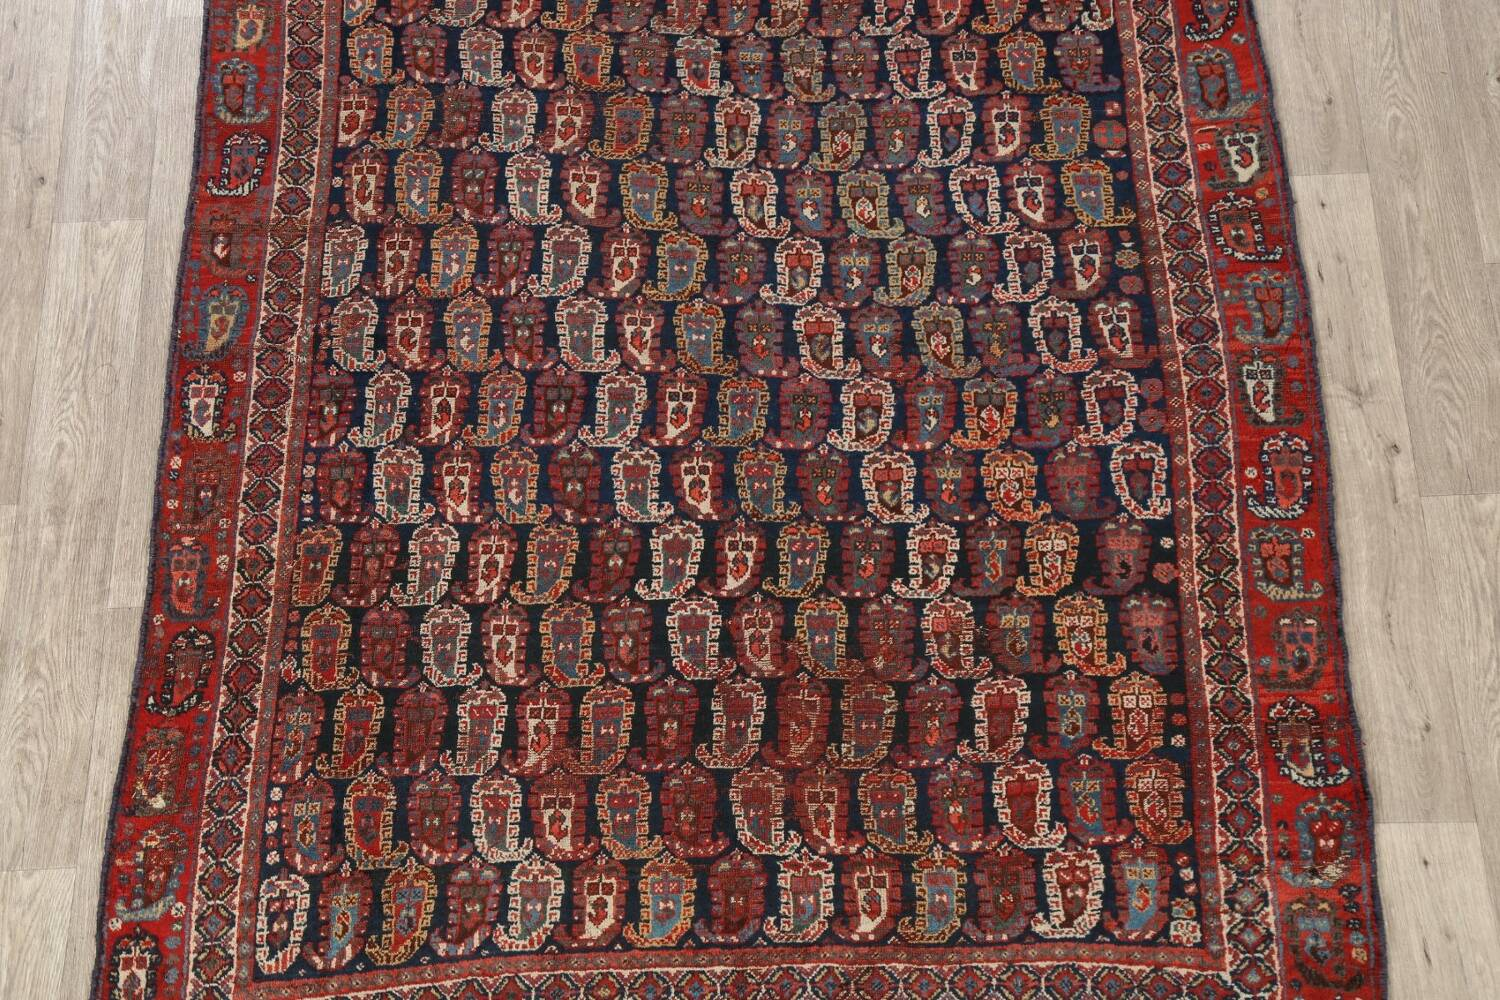 Pre-1900 Antique All-Over Malayer Persian Area Rug 6x7 image 3